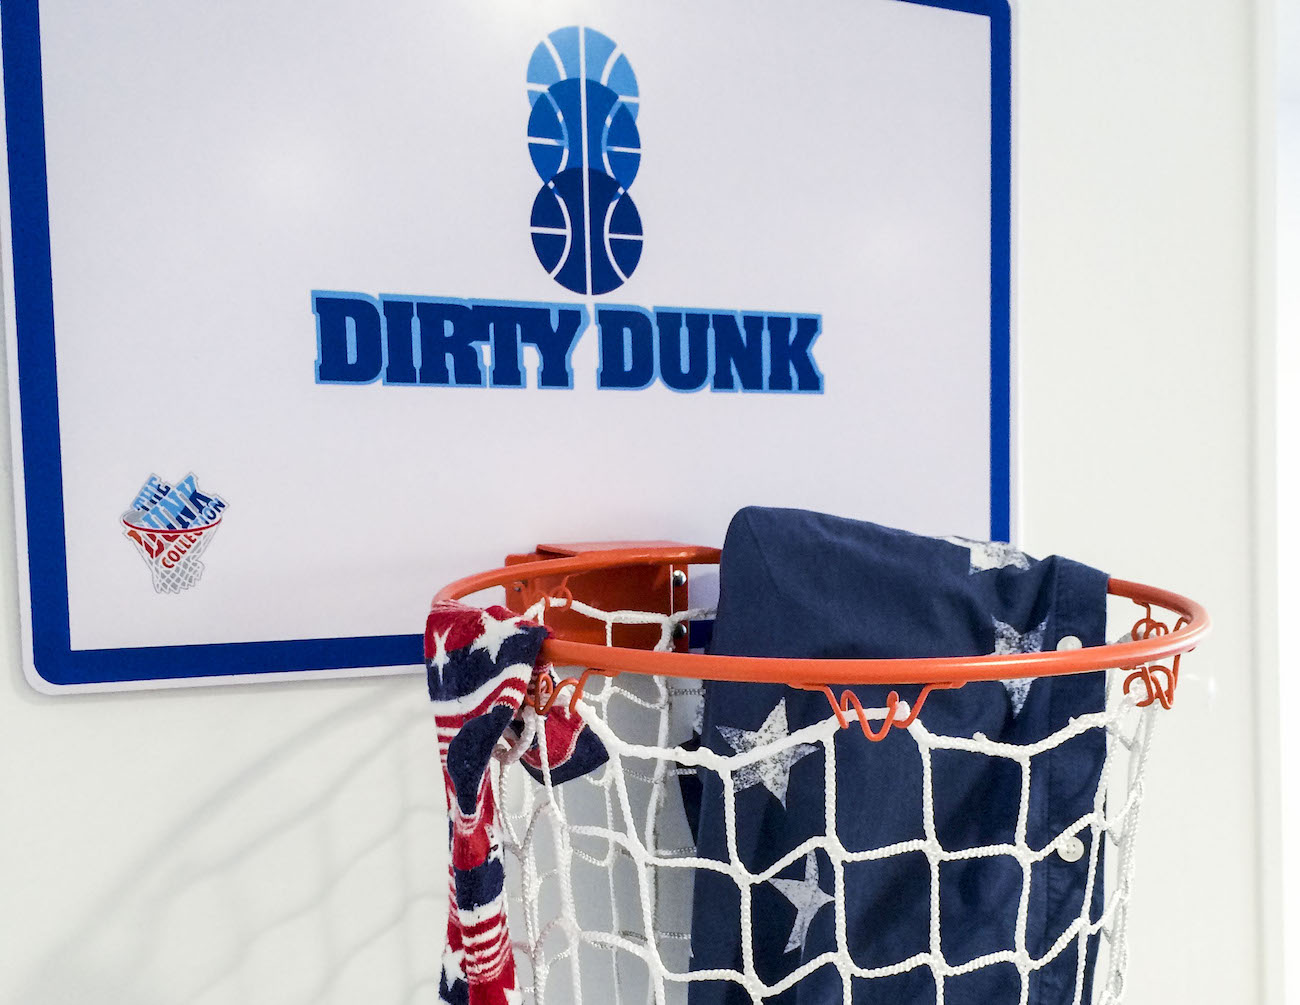 The Dirty Dunk U2013 The Original Over The Door Basketball Hoop Laundry Hamper